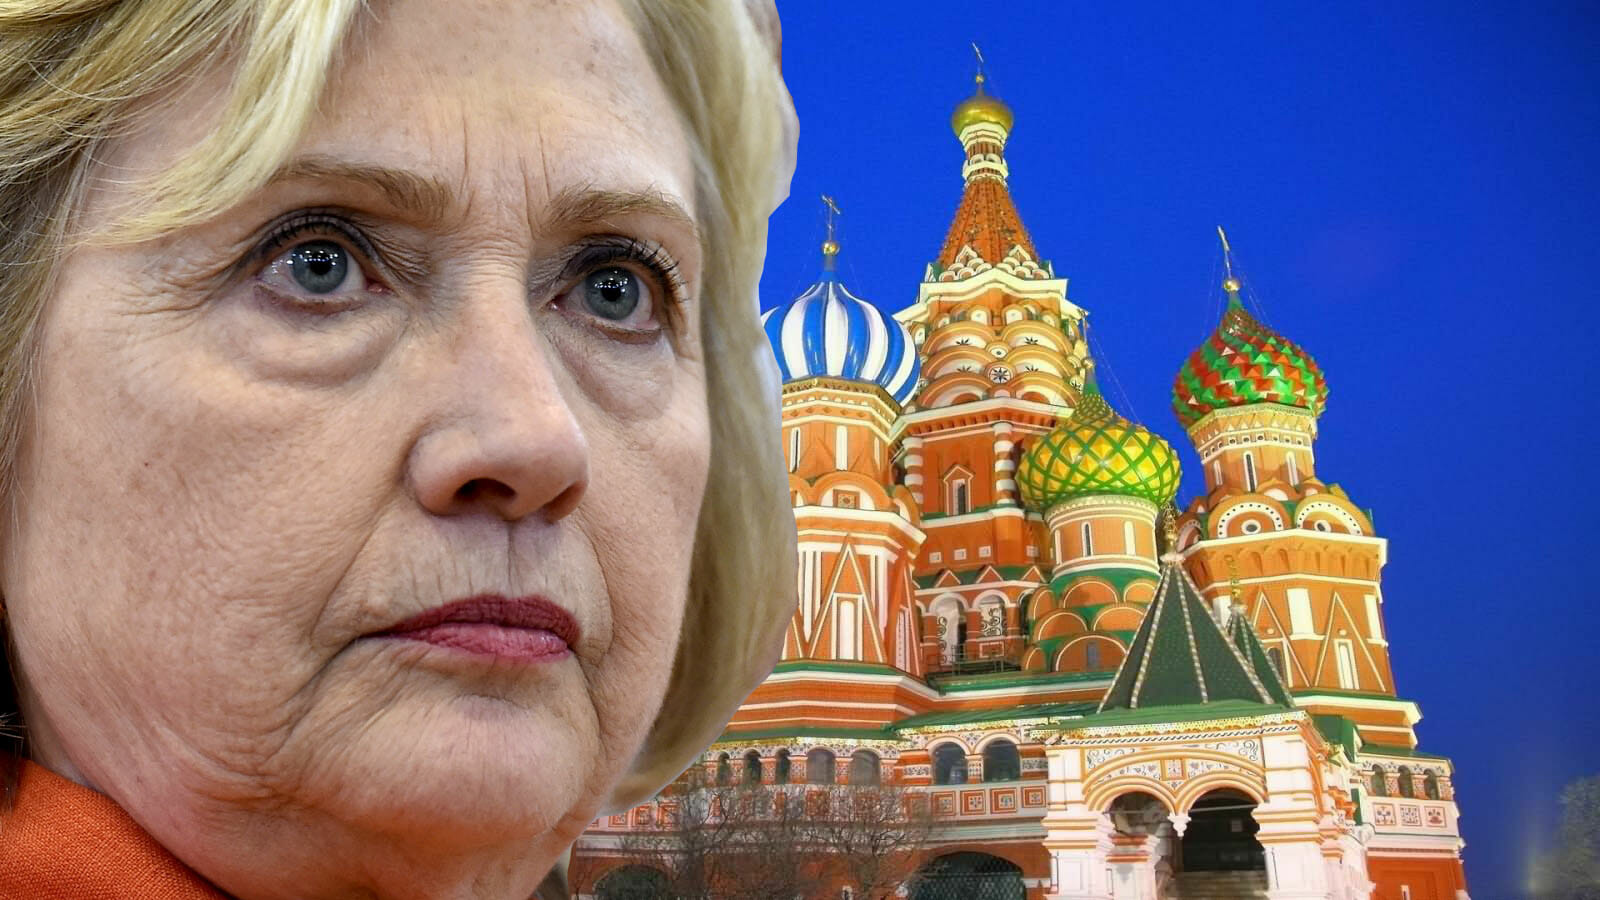 BOMBSHELL: Phony Hillary-Funded Russia Dossier Was Used to Obtain Trump FISA Warrant – More to be Revealed Soon